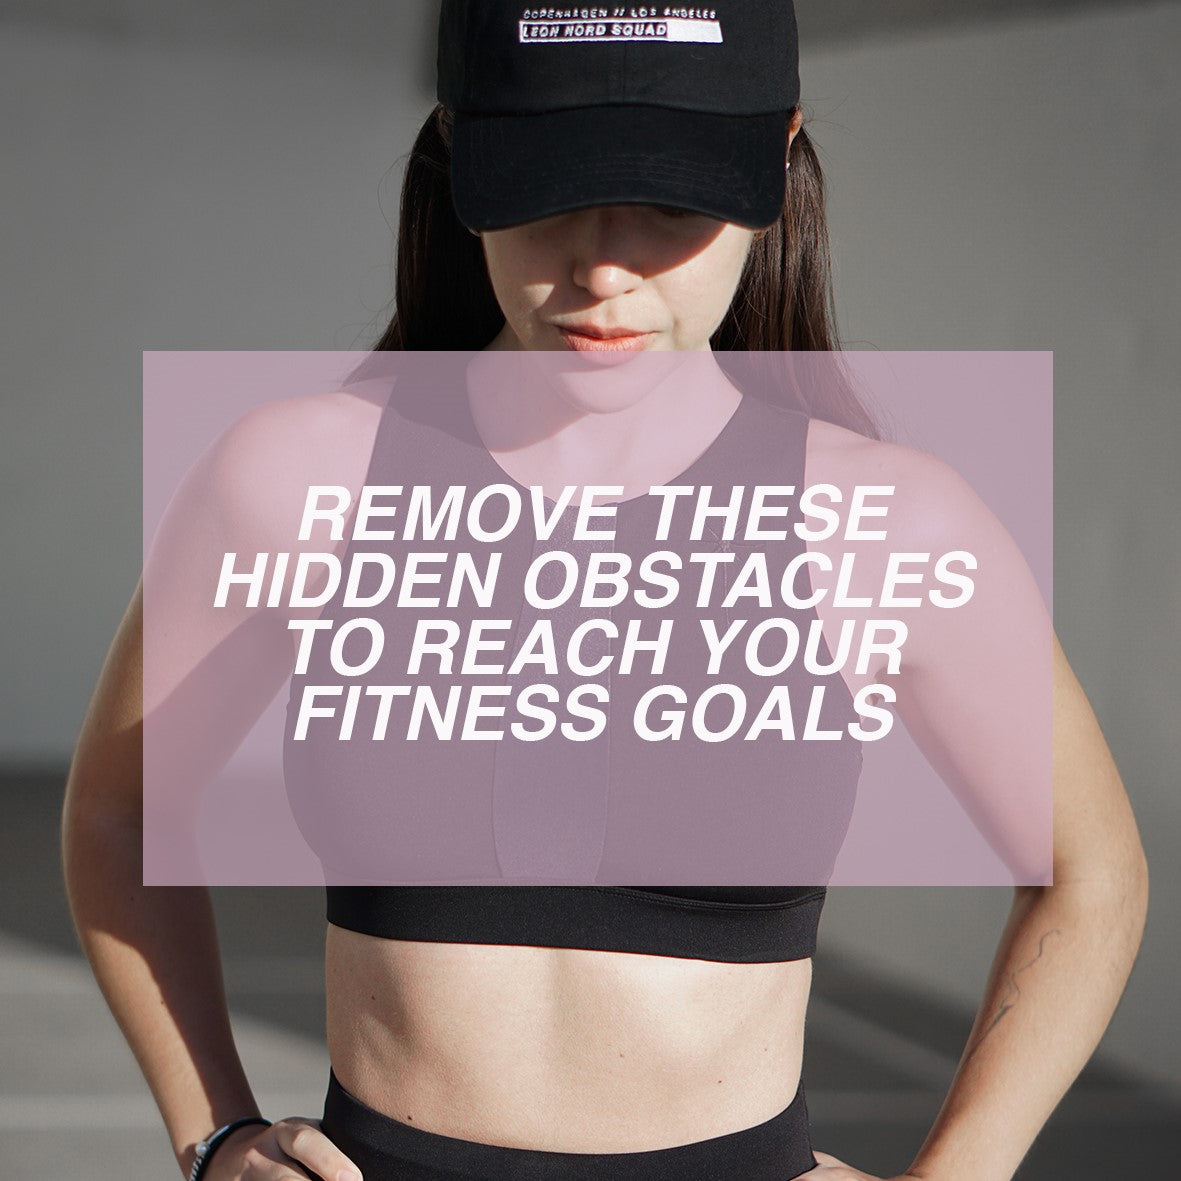 LEON NORD Activewear - Remove These Obstacles to Reach Your Fitness Goals